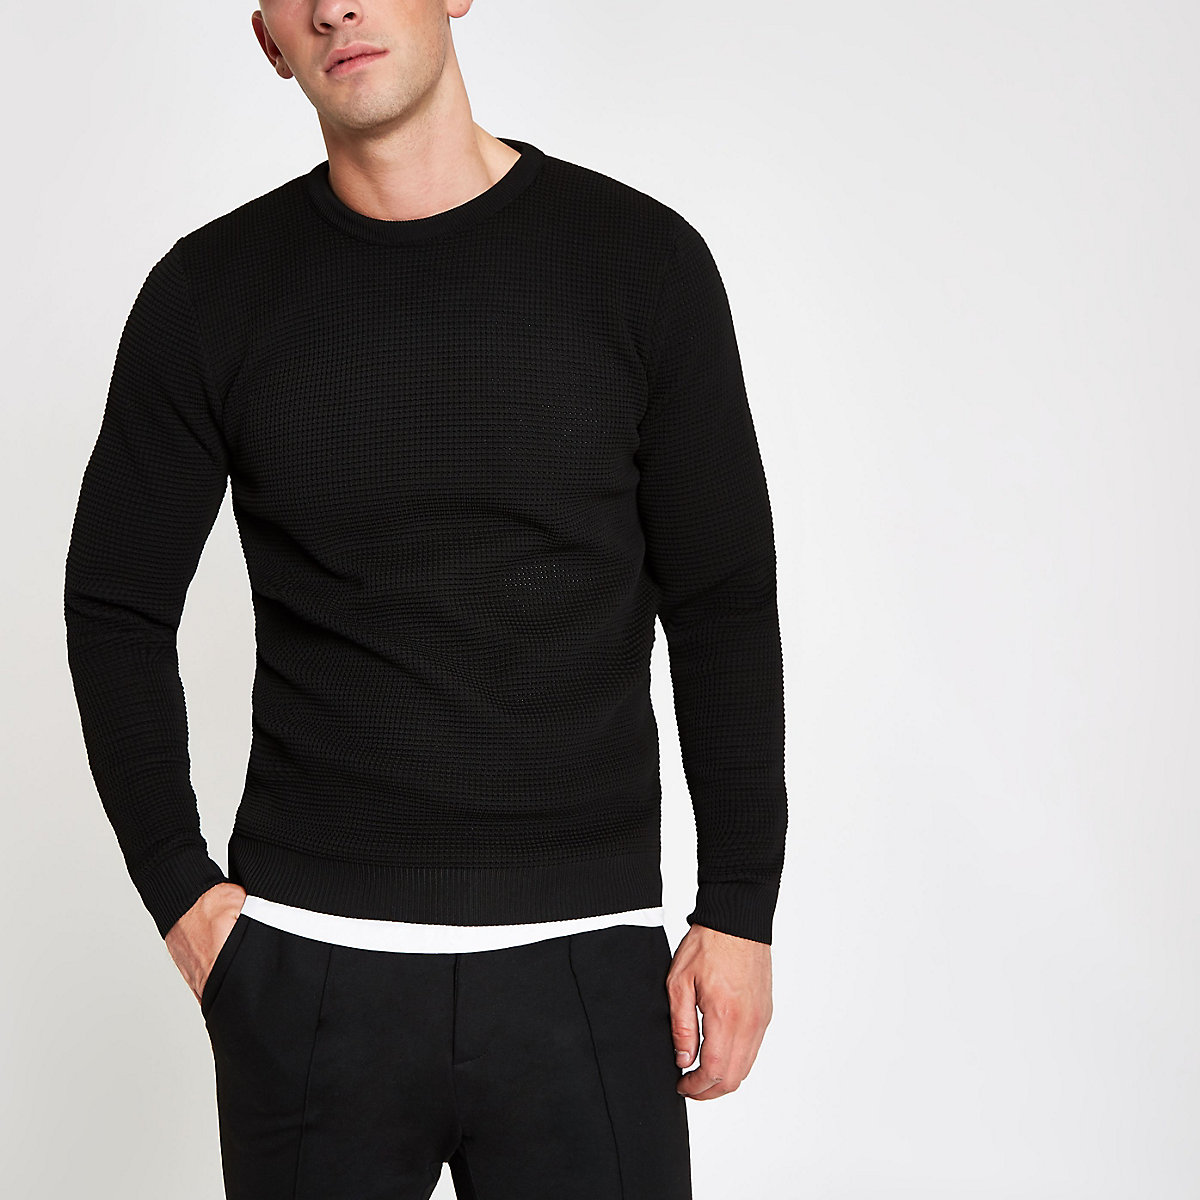 Black slim fit long sleeve textured sweater